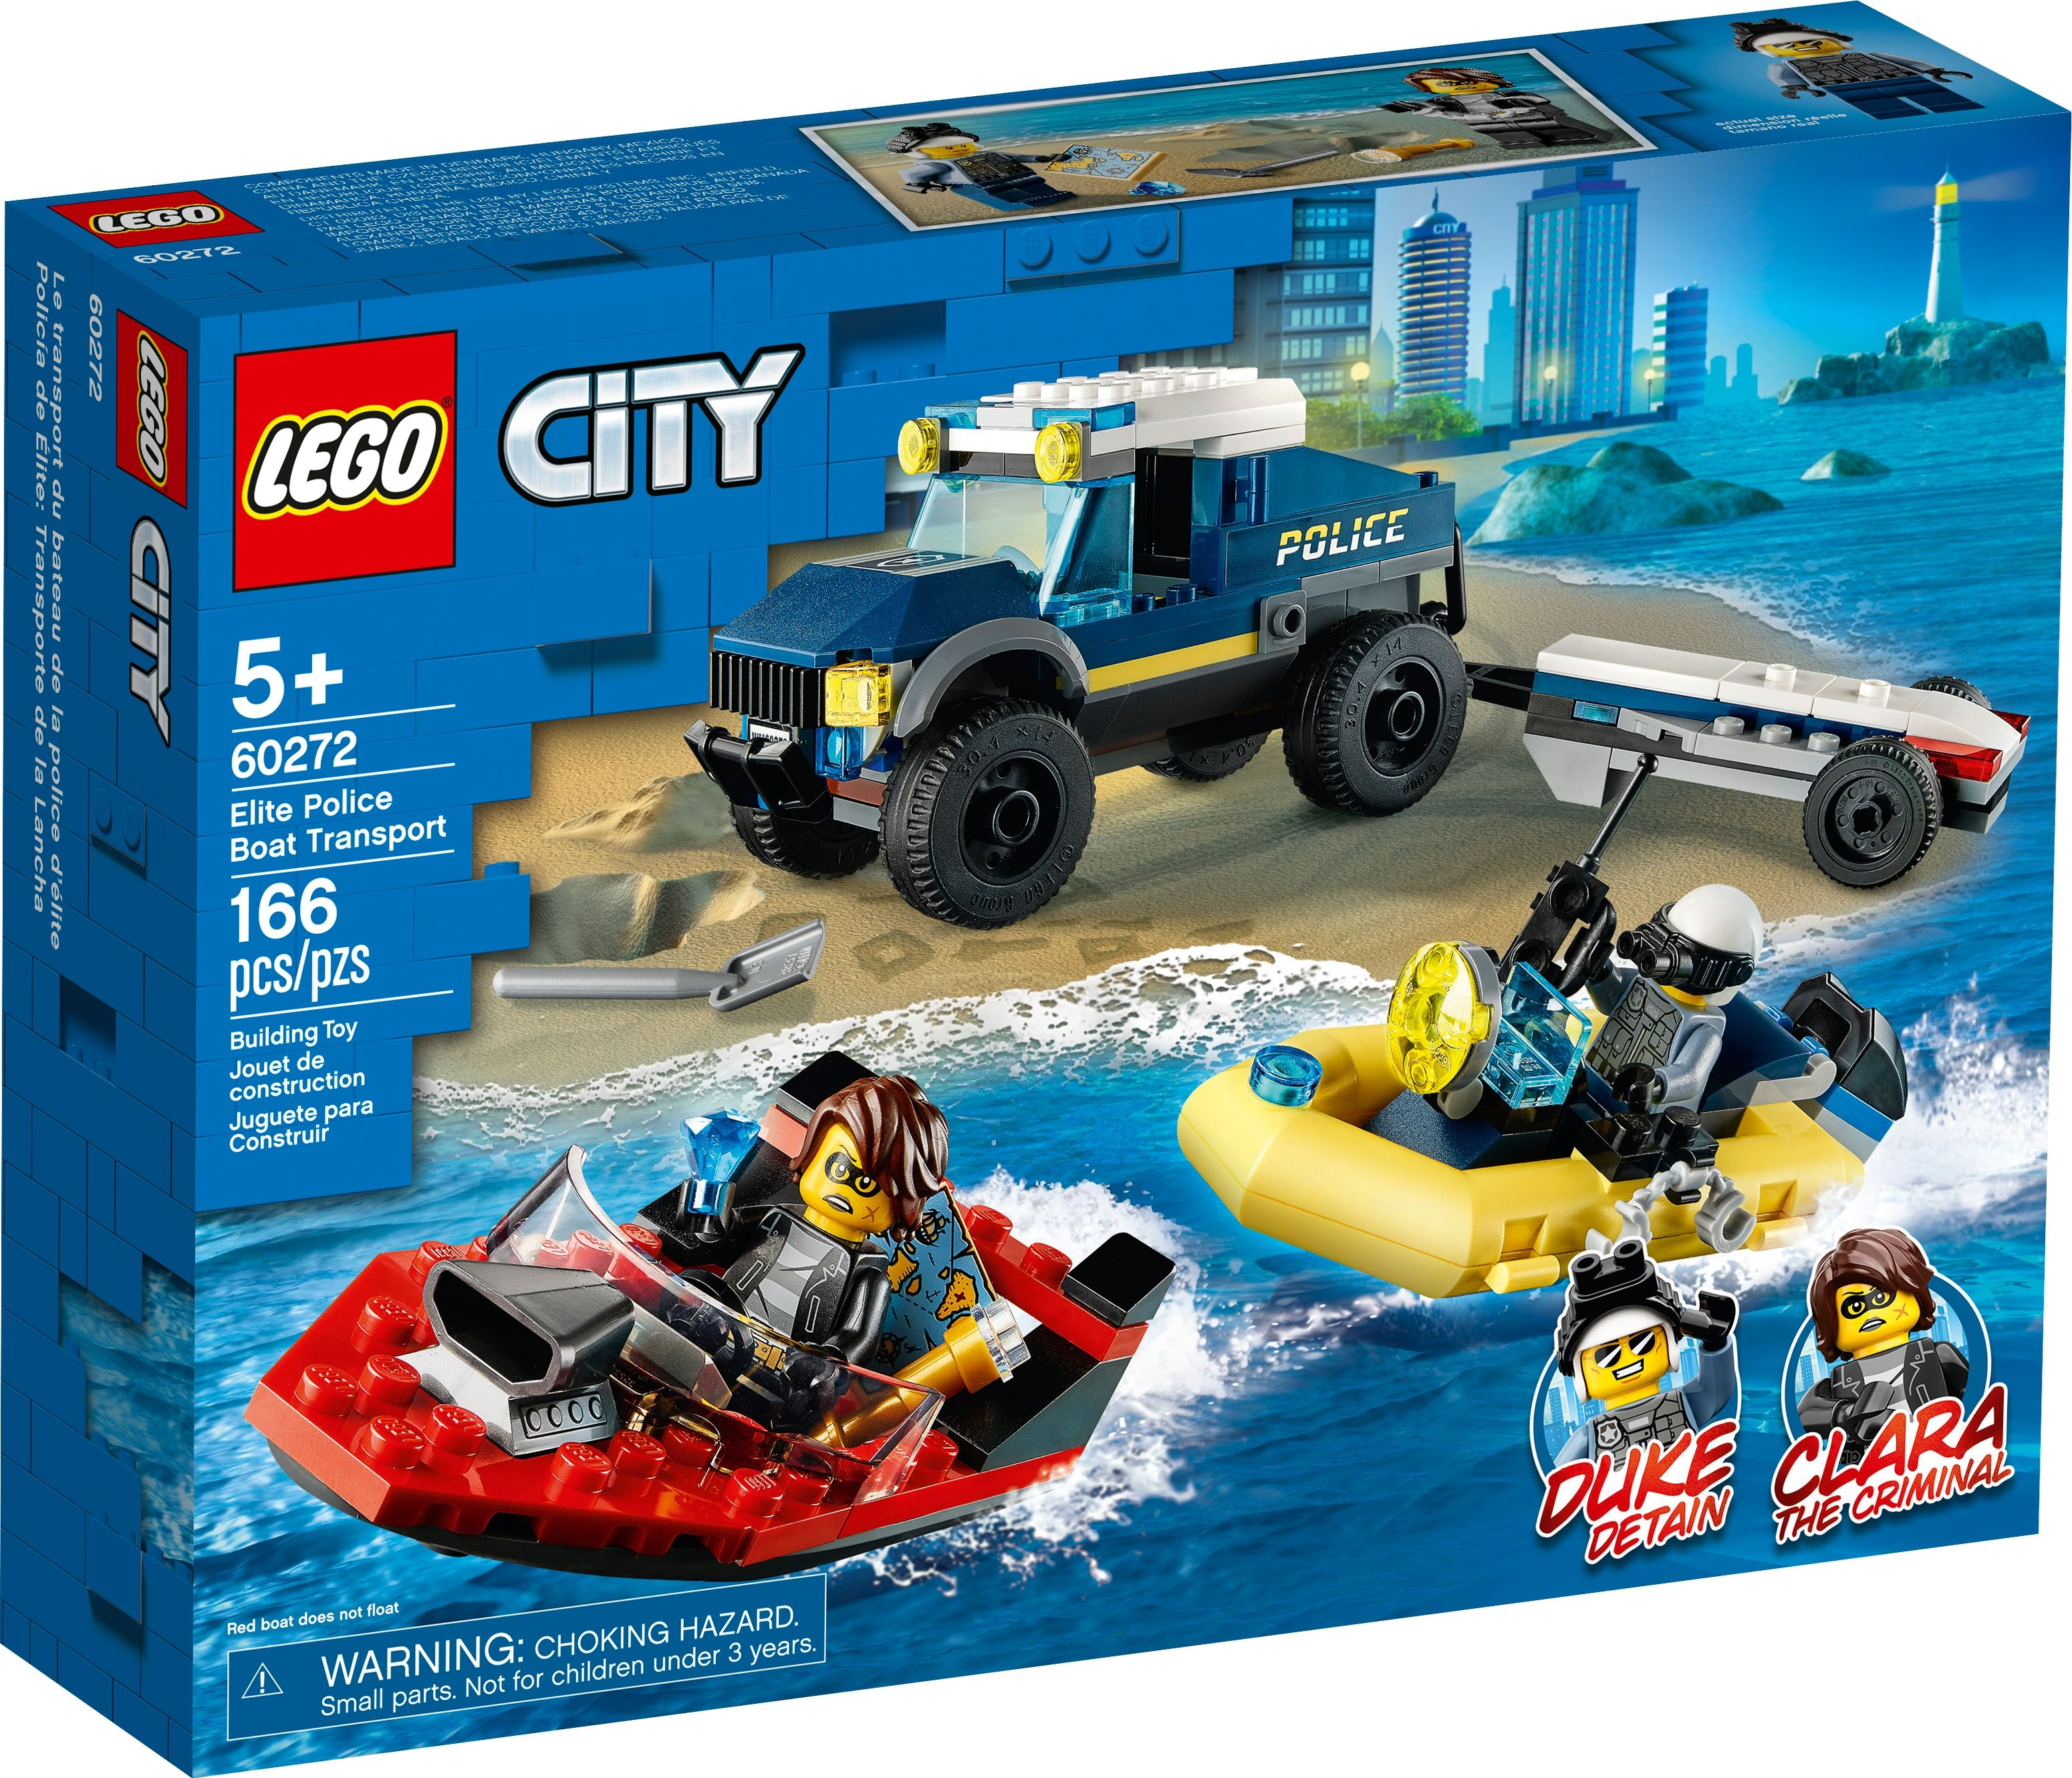 LEGO City 60272 Transport des Polizeiboots LEGO_60272_alt1.jpg